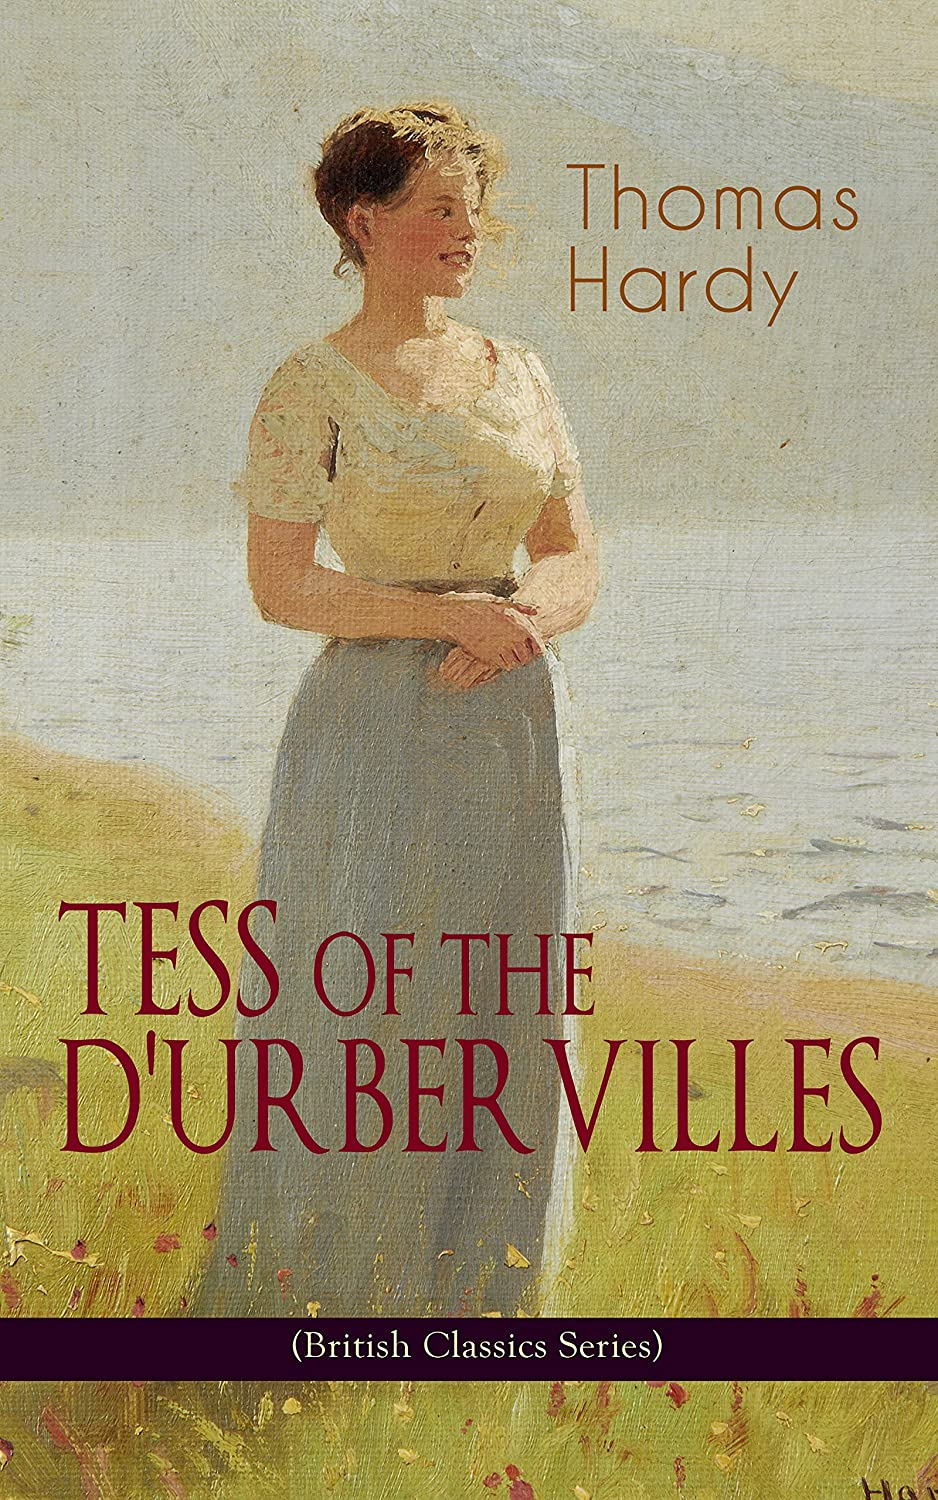 TESS OF THE DURBERVILLES (British Classics Series): A Pure Woman ...